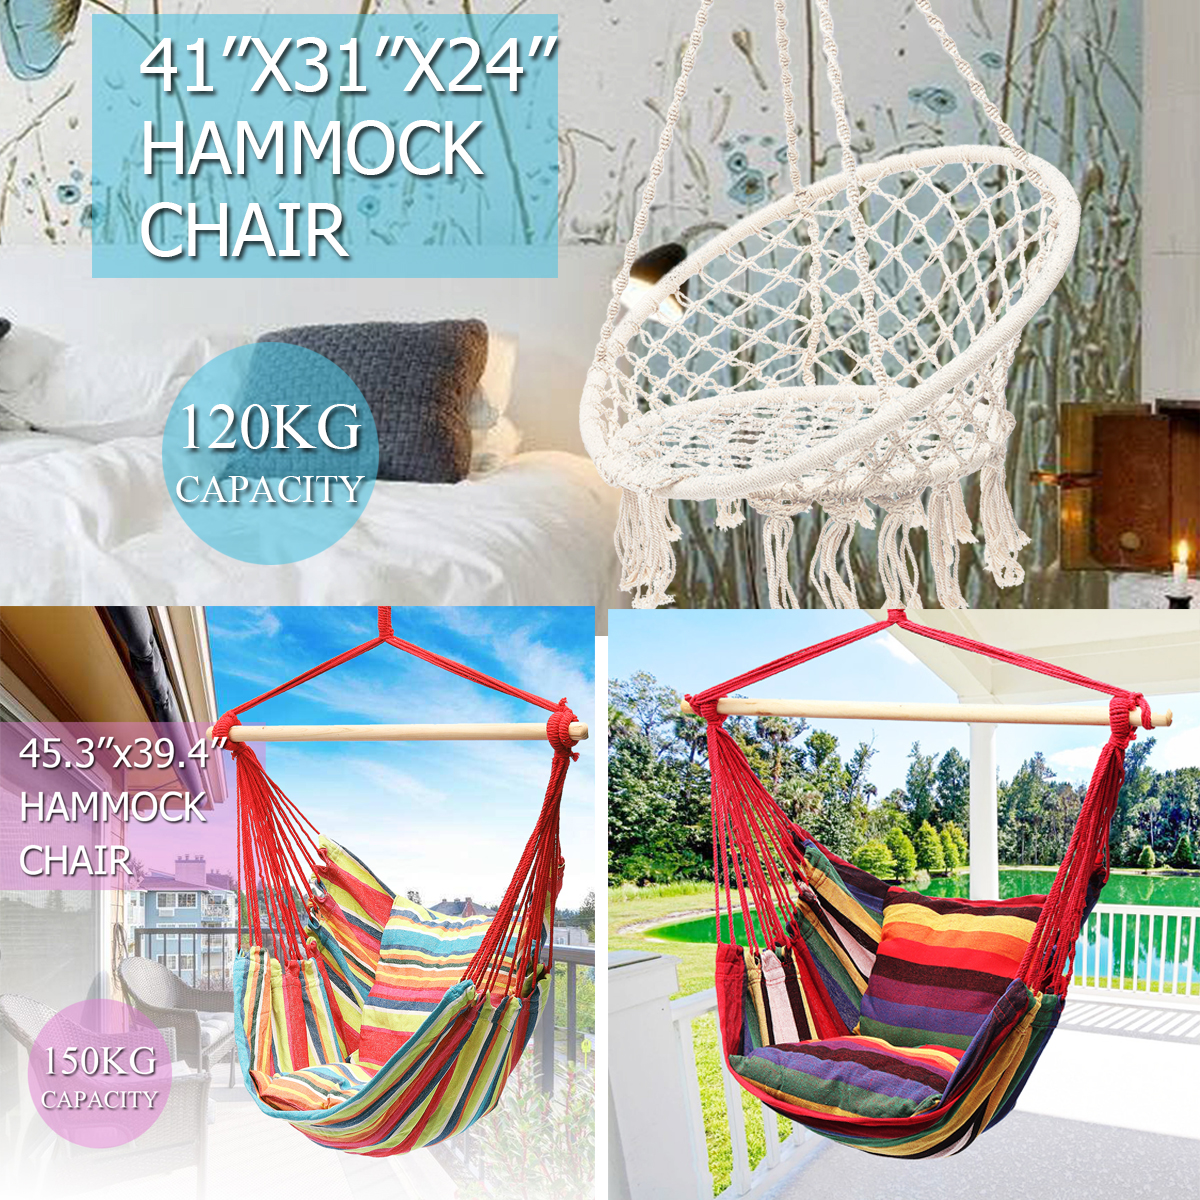 Nordic Round Hanging Hammock Chair Fashion Dormitory Bedroom Swinging Chair Outdoor Furniture Indoor Camping Cottage Garden garden hammock chair light hammock hanging chair indoor